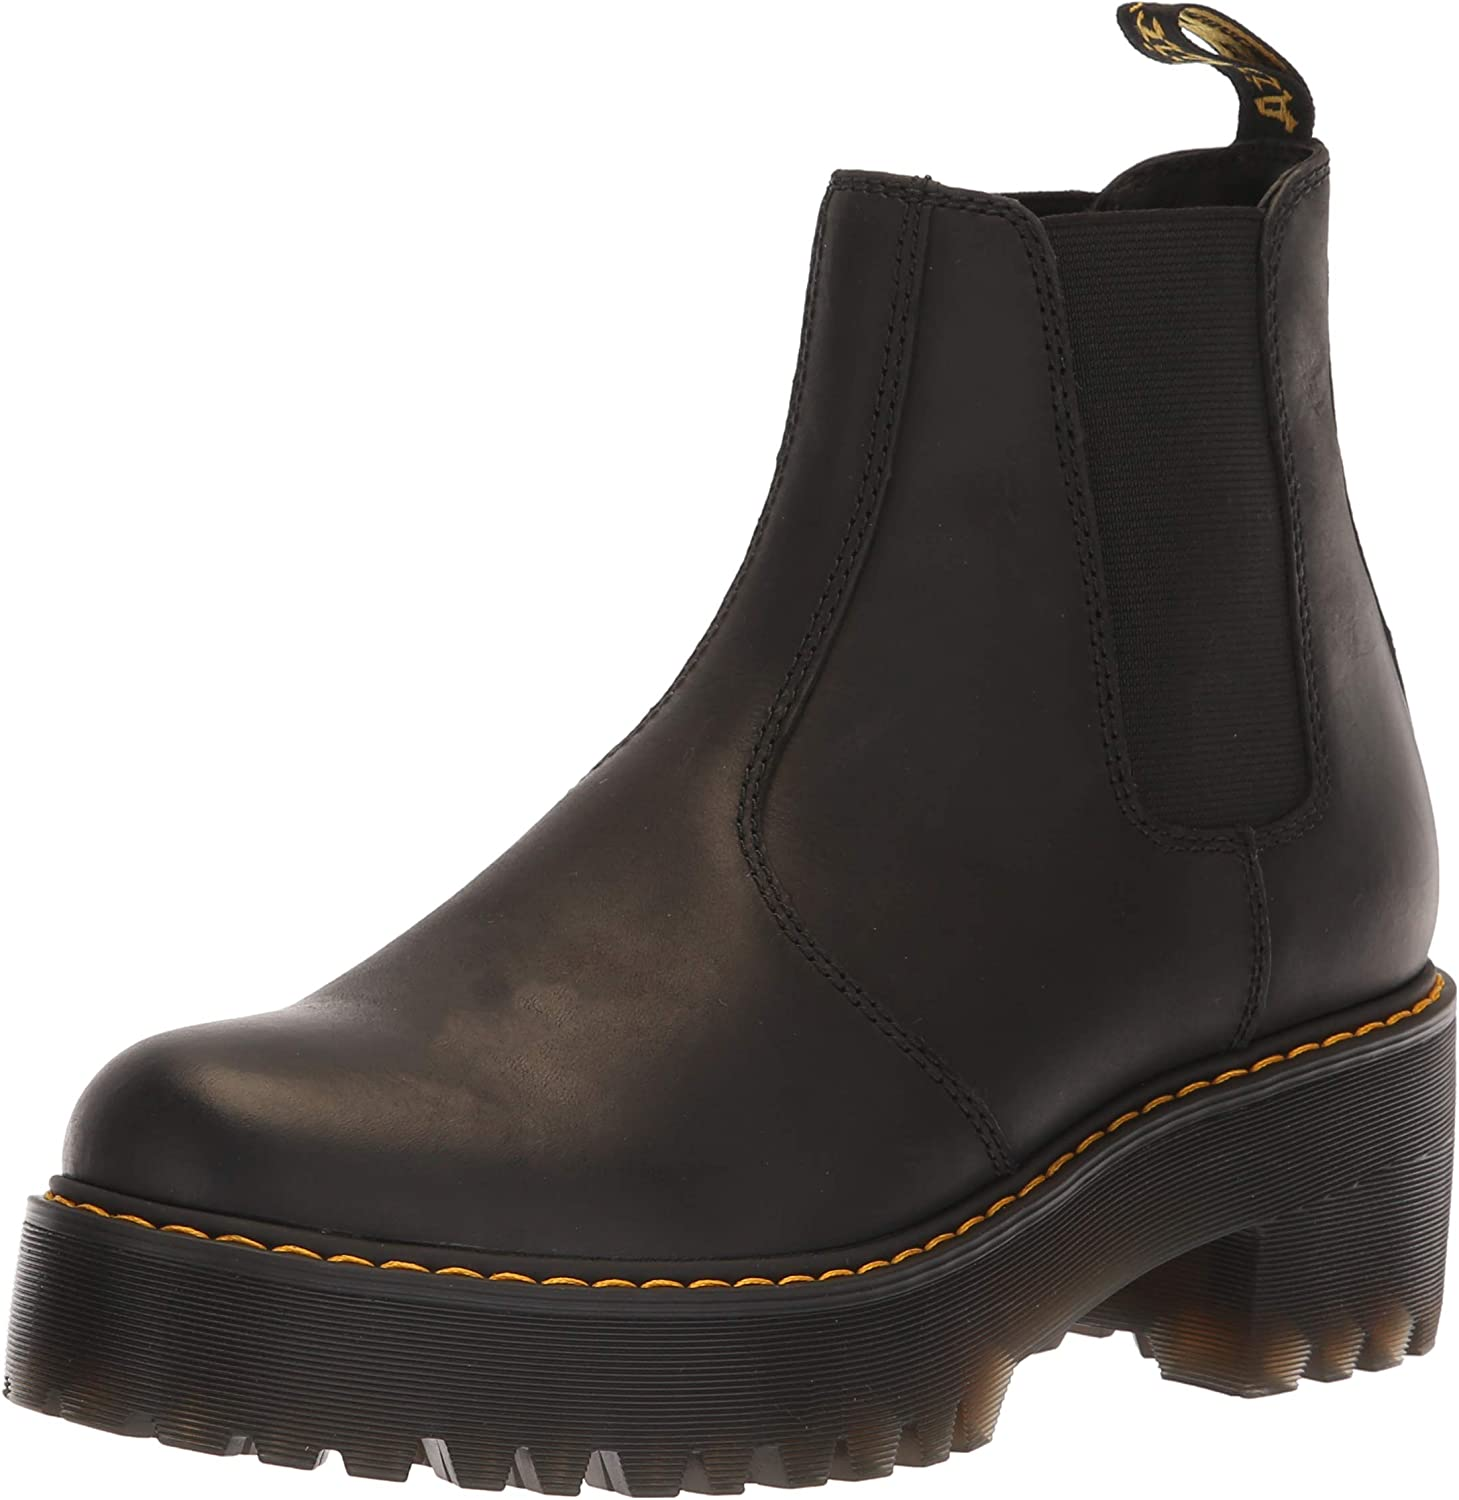 | Dr. Martens Women's Rometty Fashion Boot | Ankle & Bootie